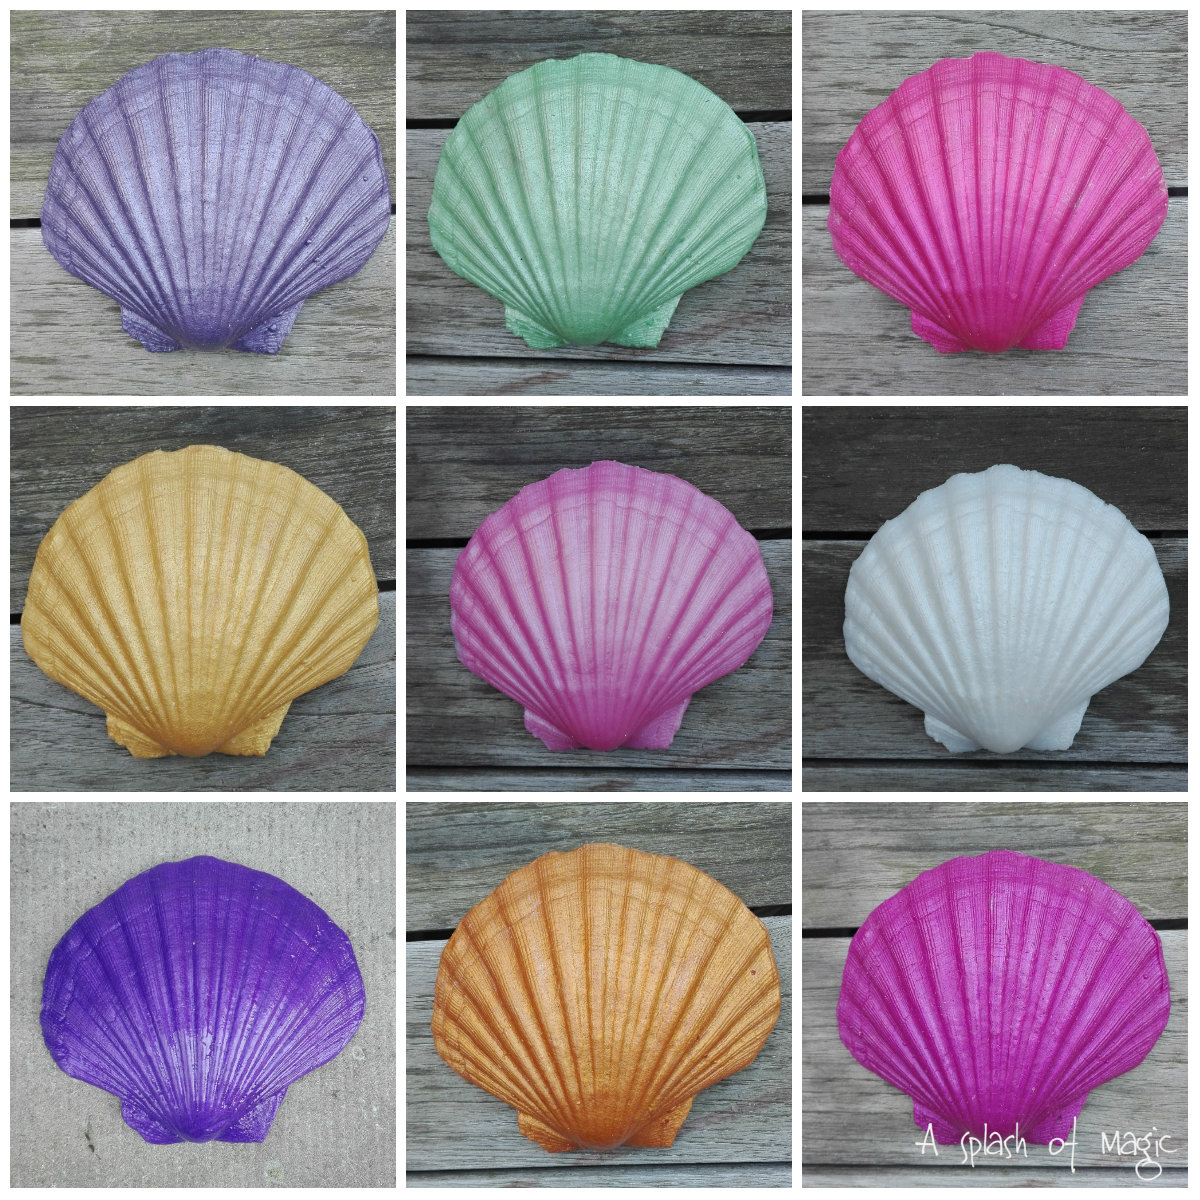 Name:  collage shells a splash of magic.jpg